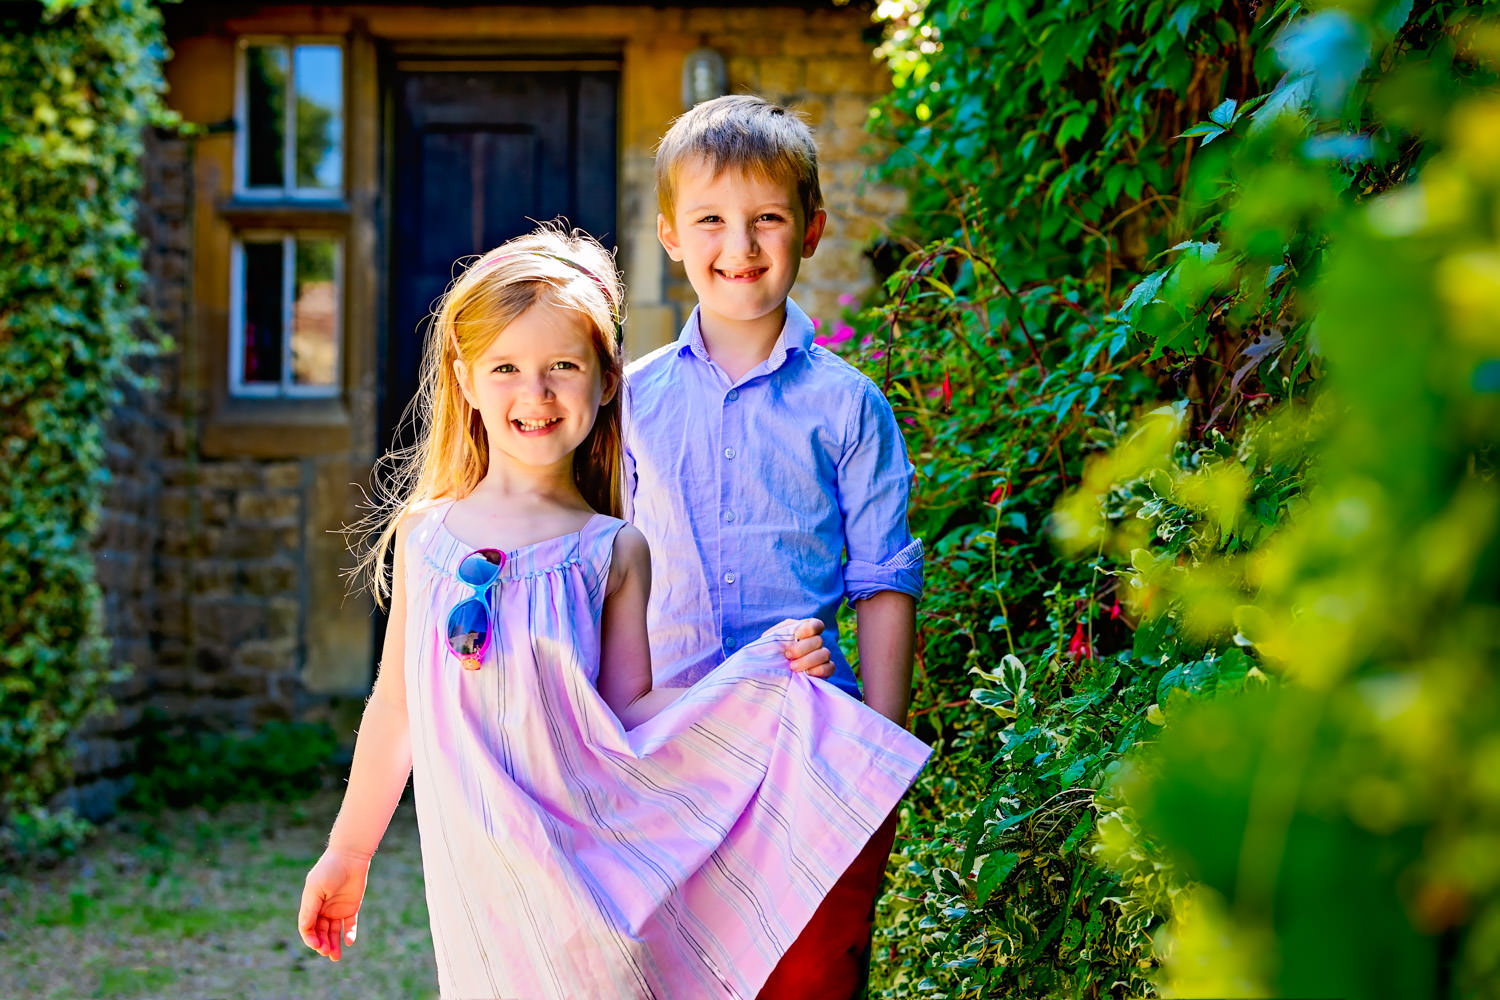 Alexandra Tandy Photography portrait of brother and sister